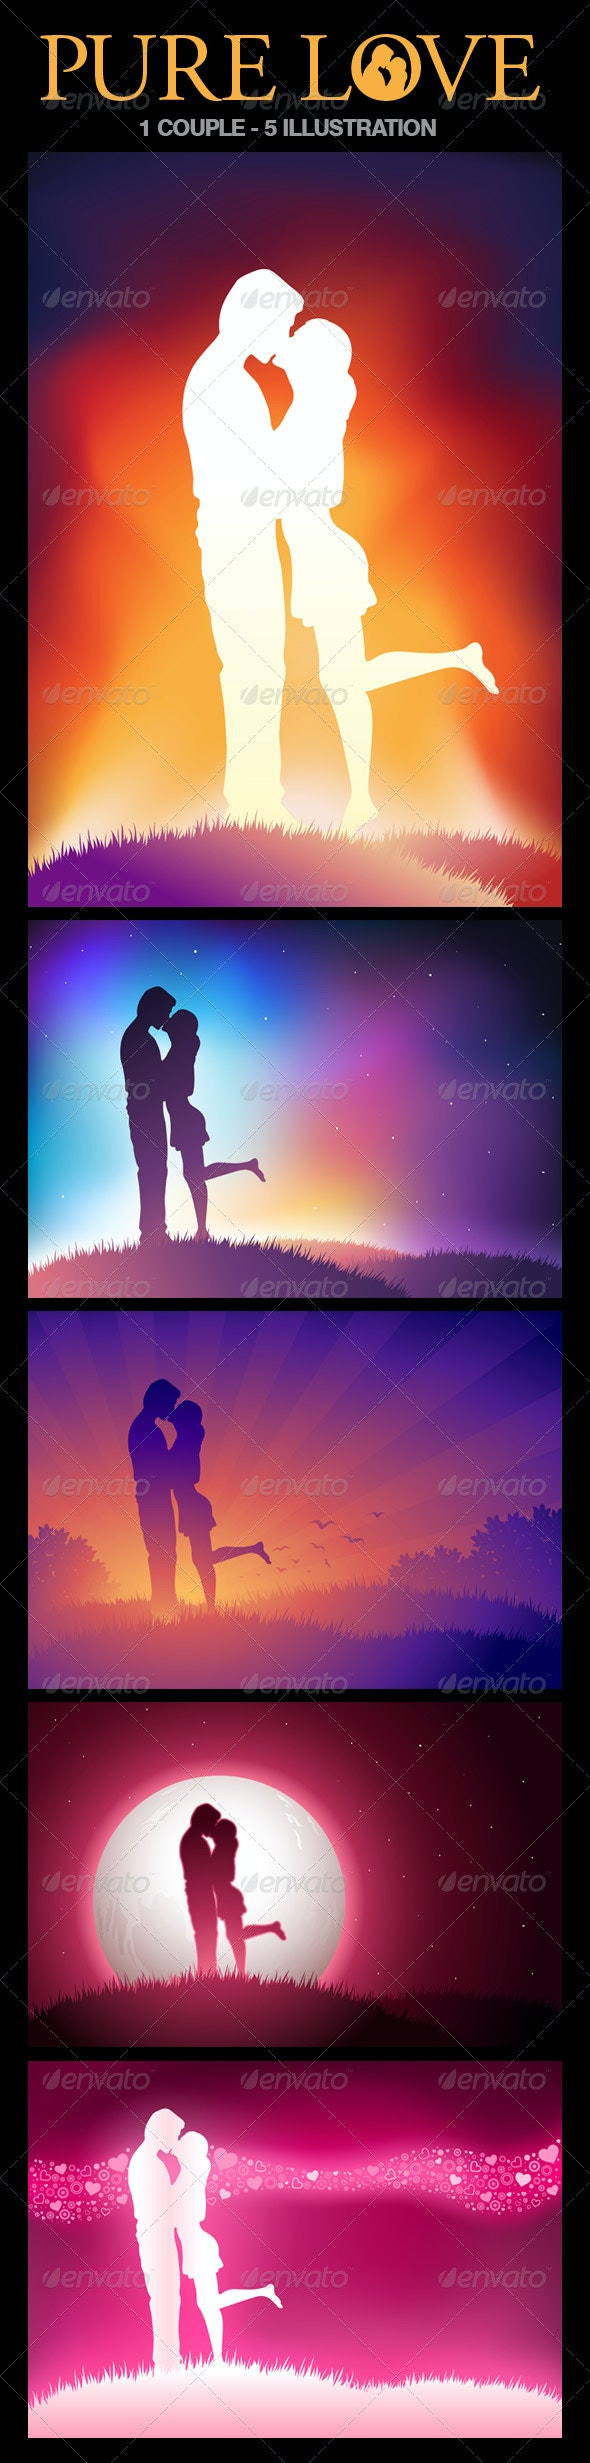 Lovers Illustration Set - Valentines Seasons/Holidays